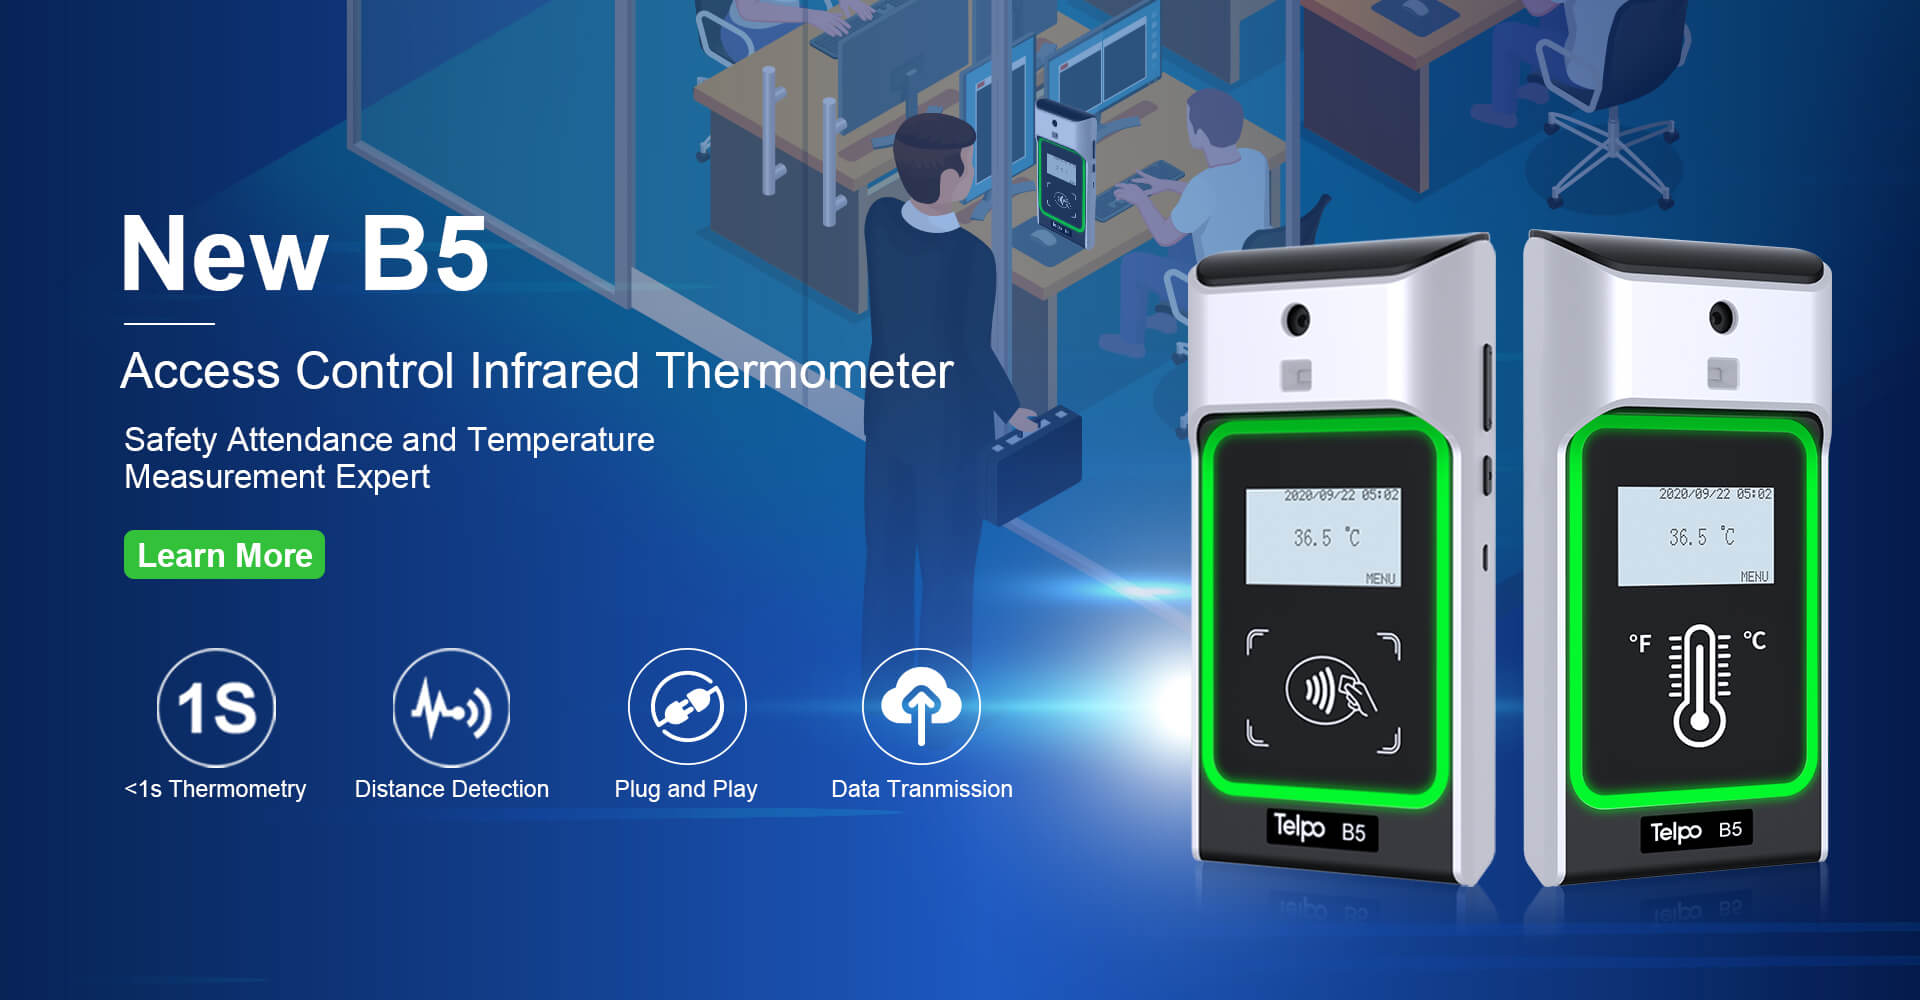 B5 Wall-mounted Non-contact Infrared Thermometer